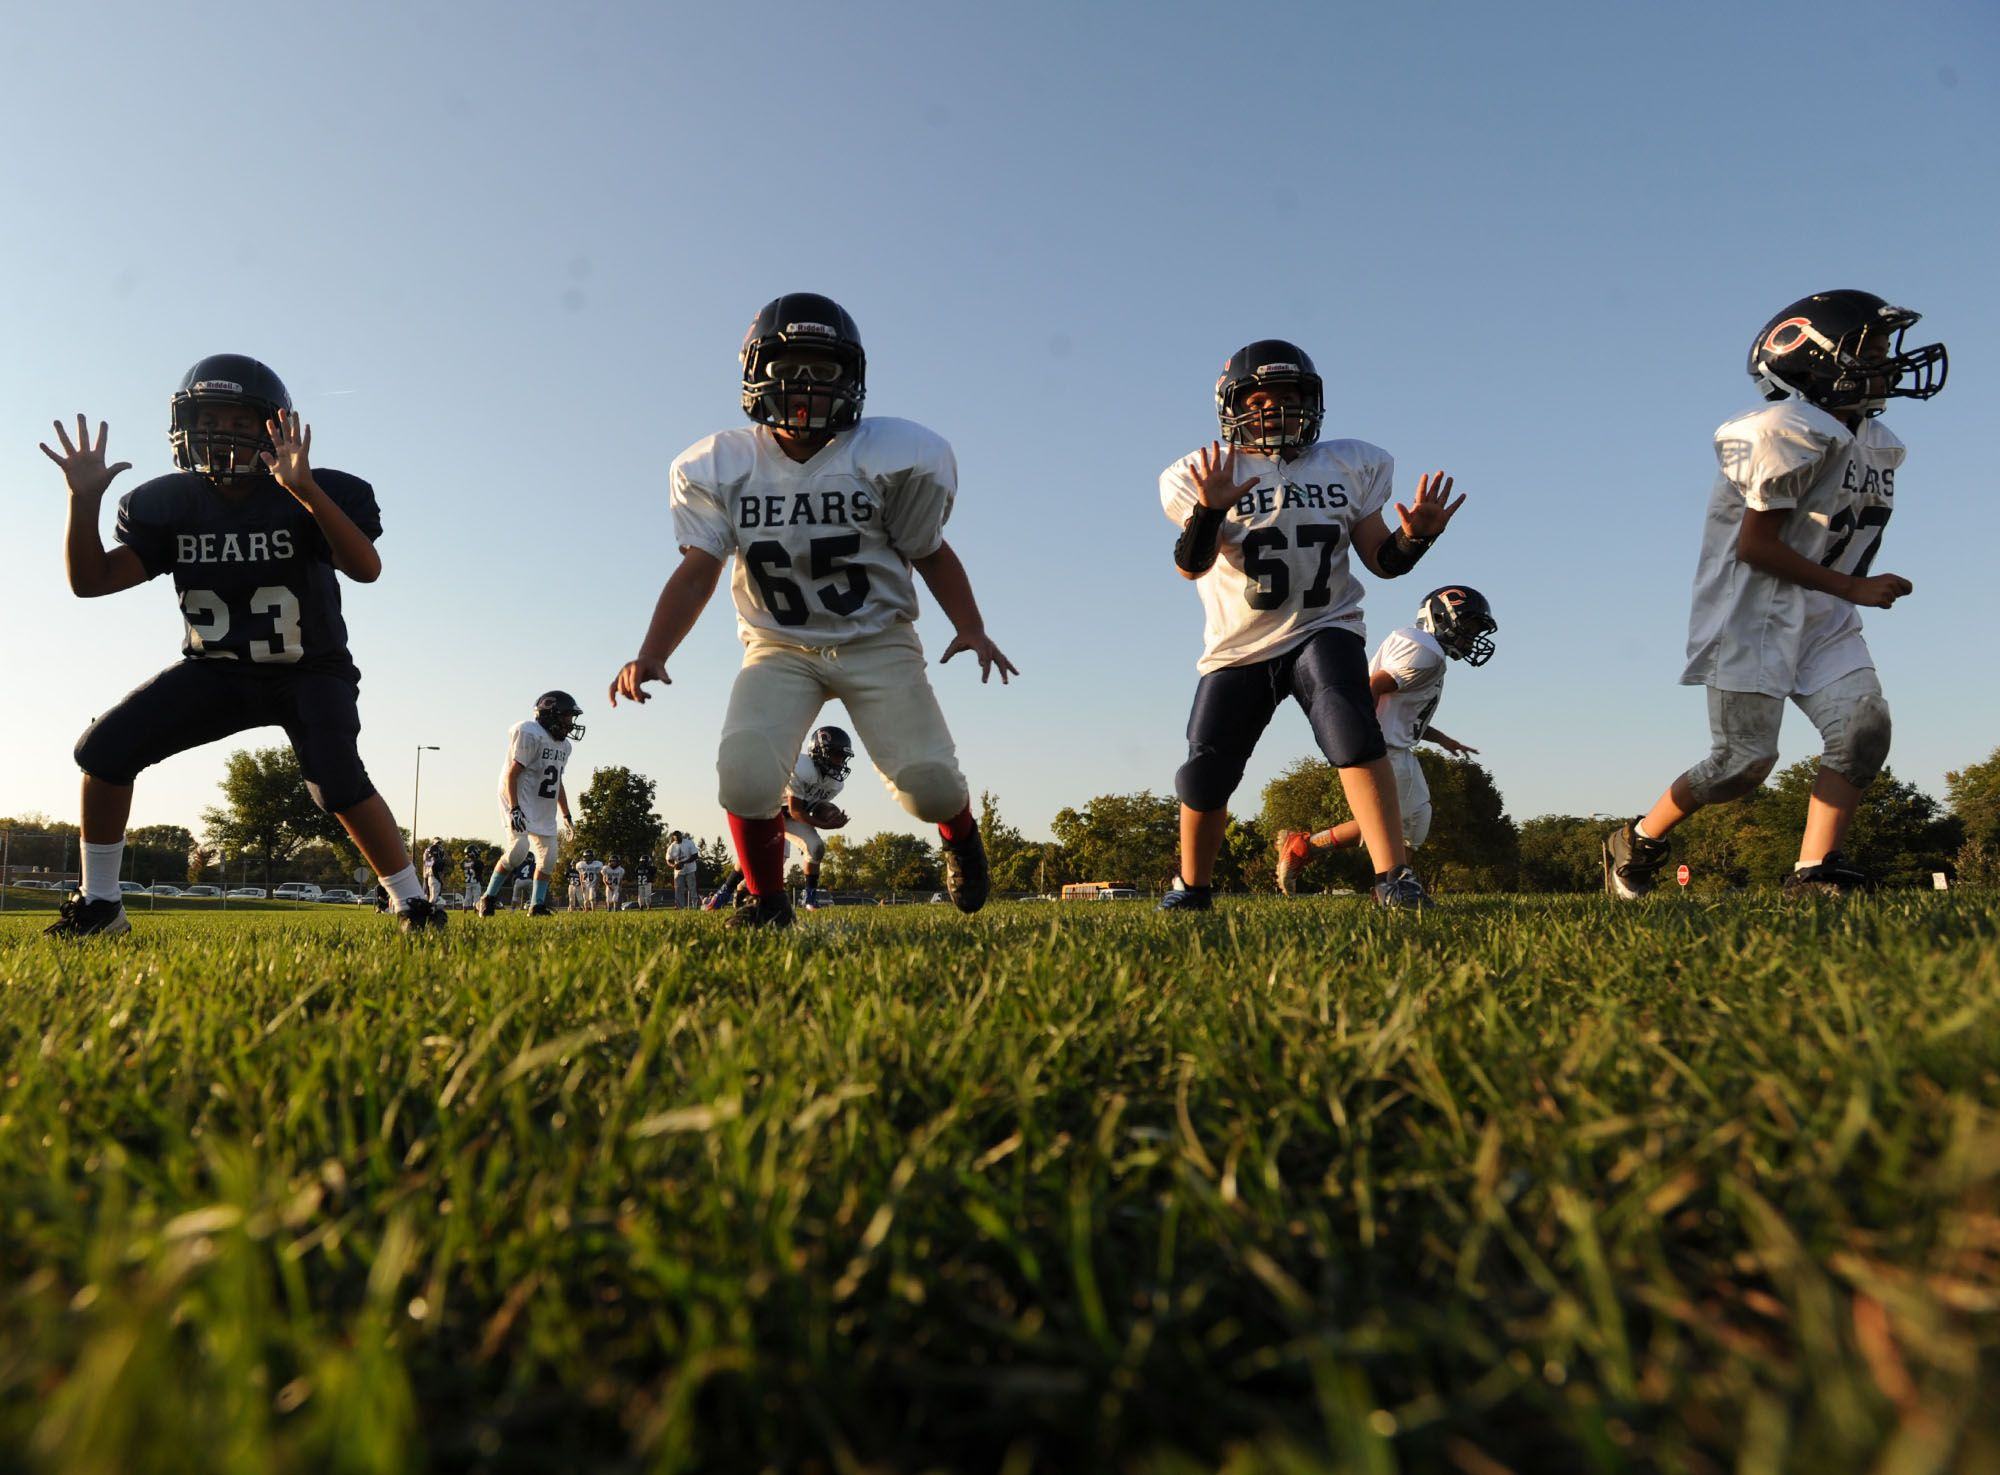 The under-8 Ames junior Bears football team practices at the Ames High Football practice field on Tuesday evening. Photo by Nirmalendu Majumdar/Ames Tribune